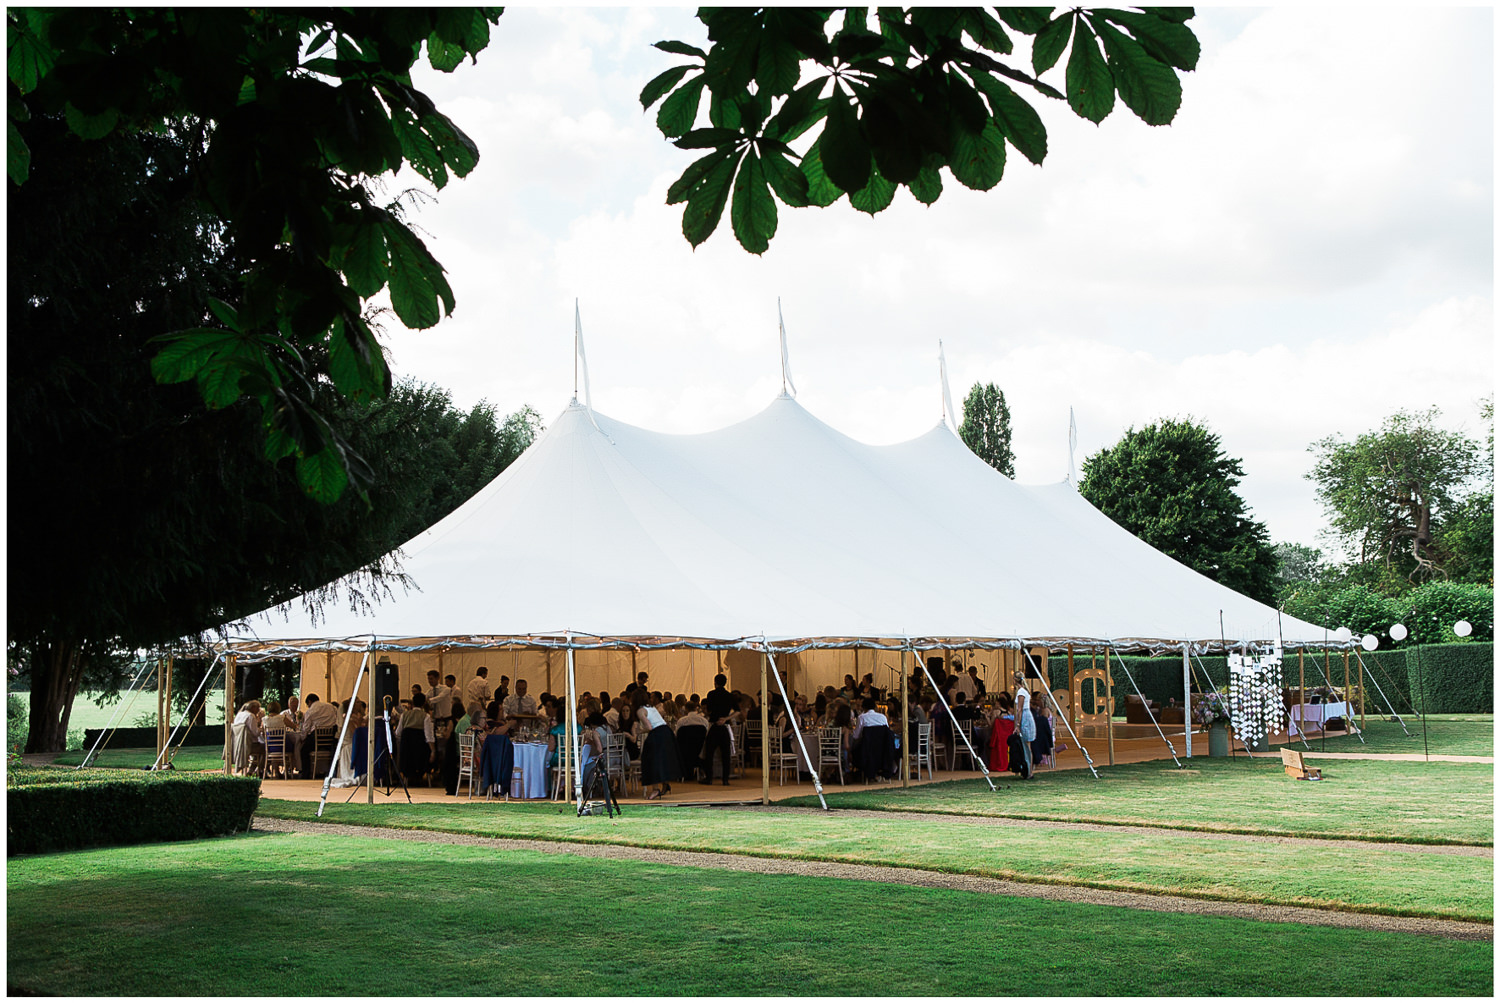 newington house, papakata marquee wedding, garden wedding, Sperry tent,